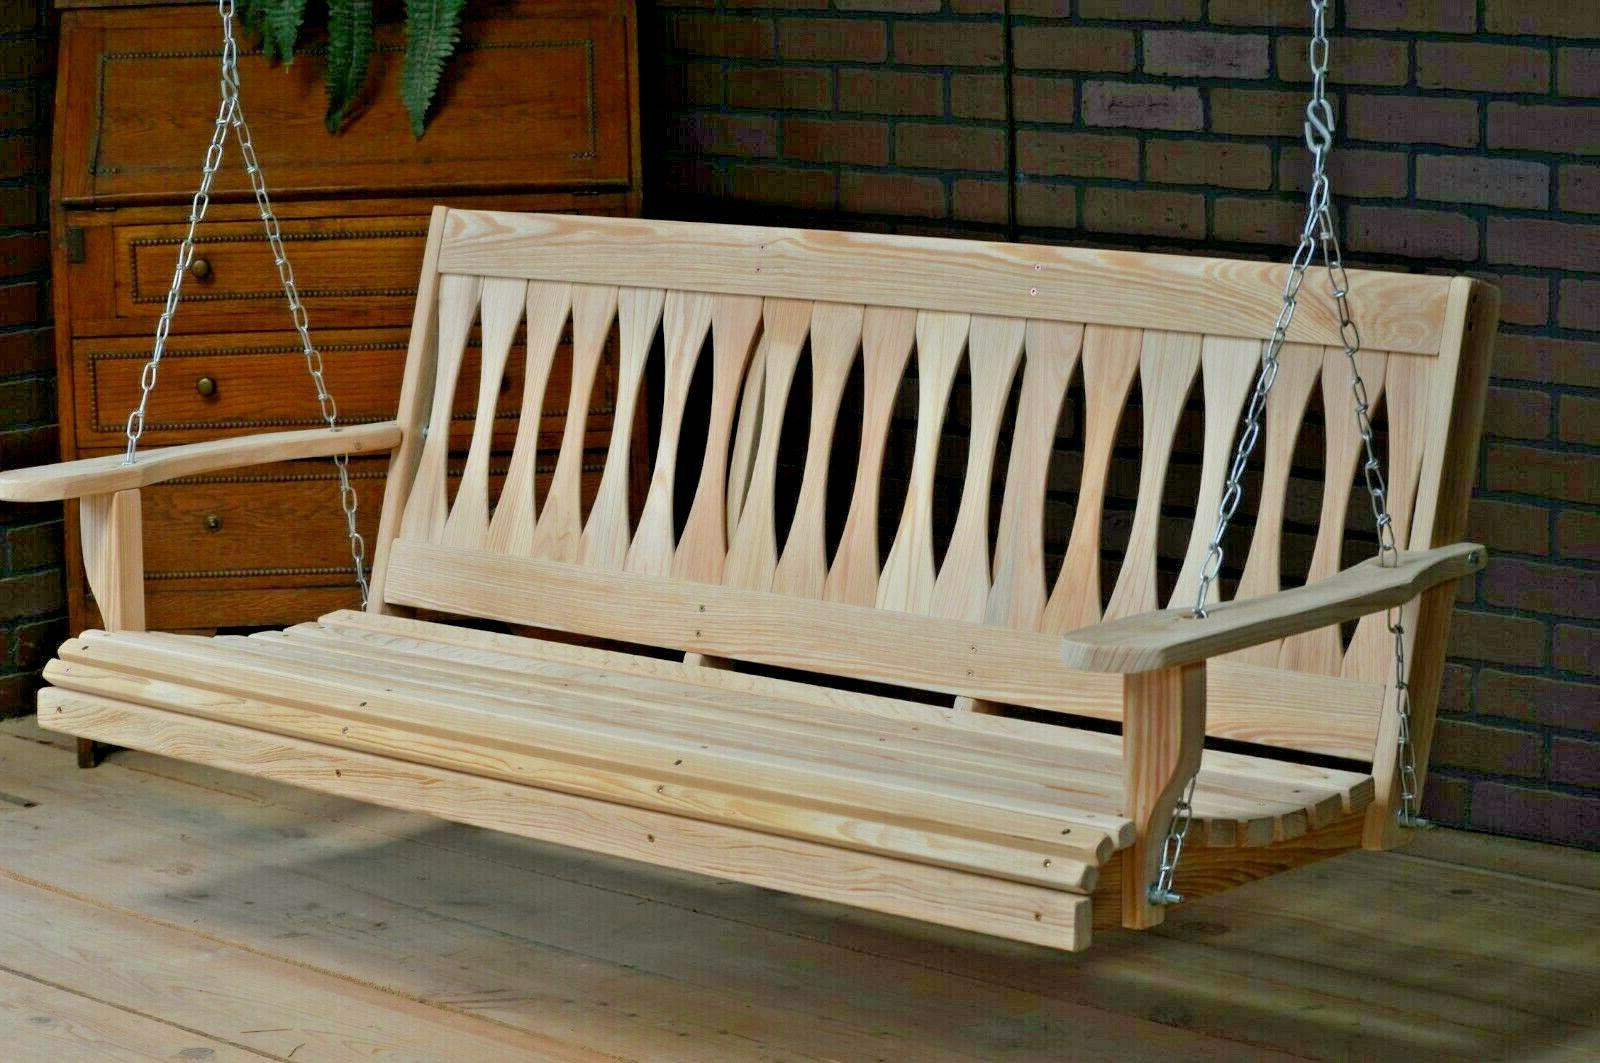 5ft Cypress Wood Porch Bench With Hanging Hardware Made USA